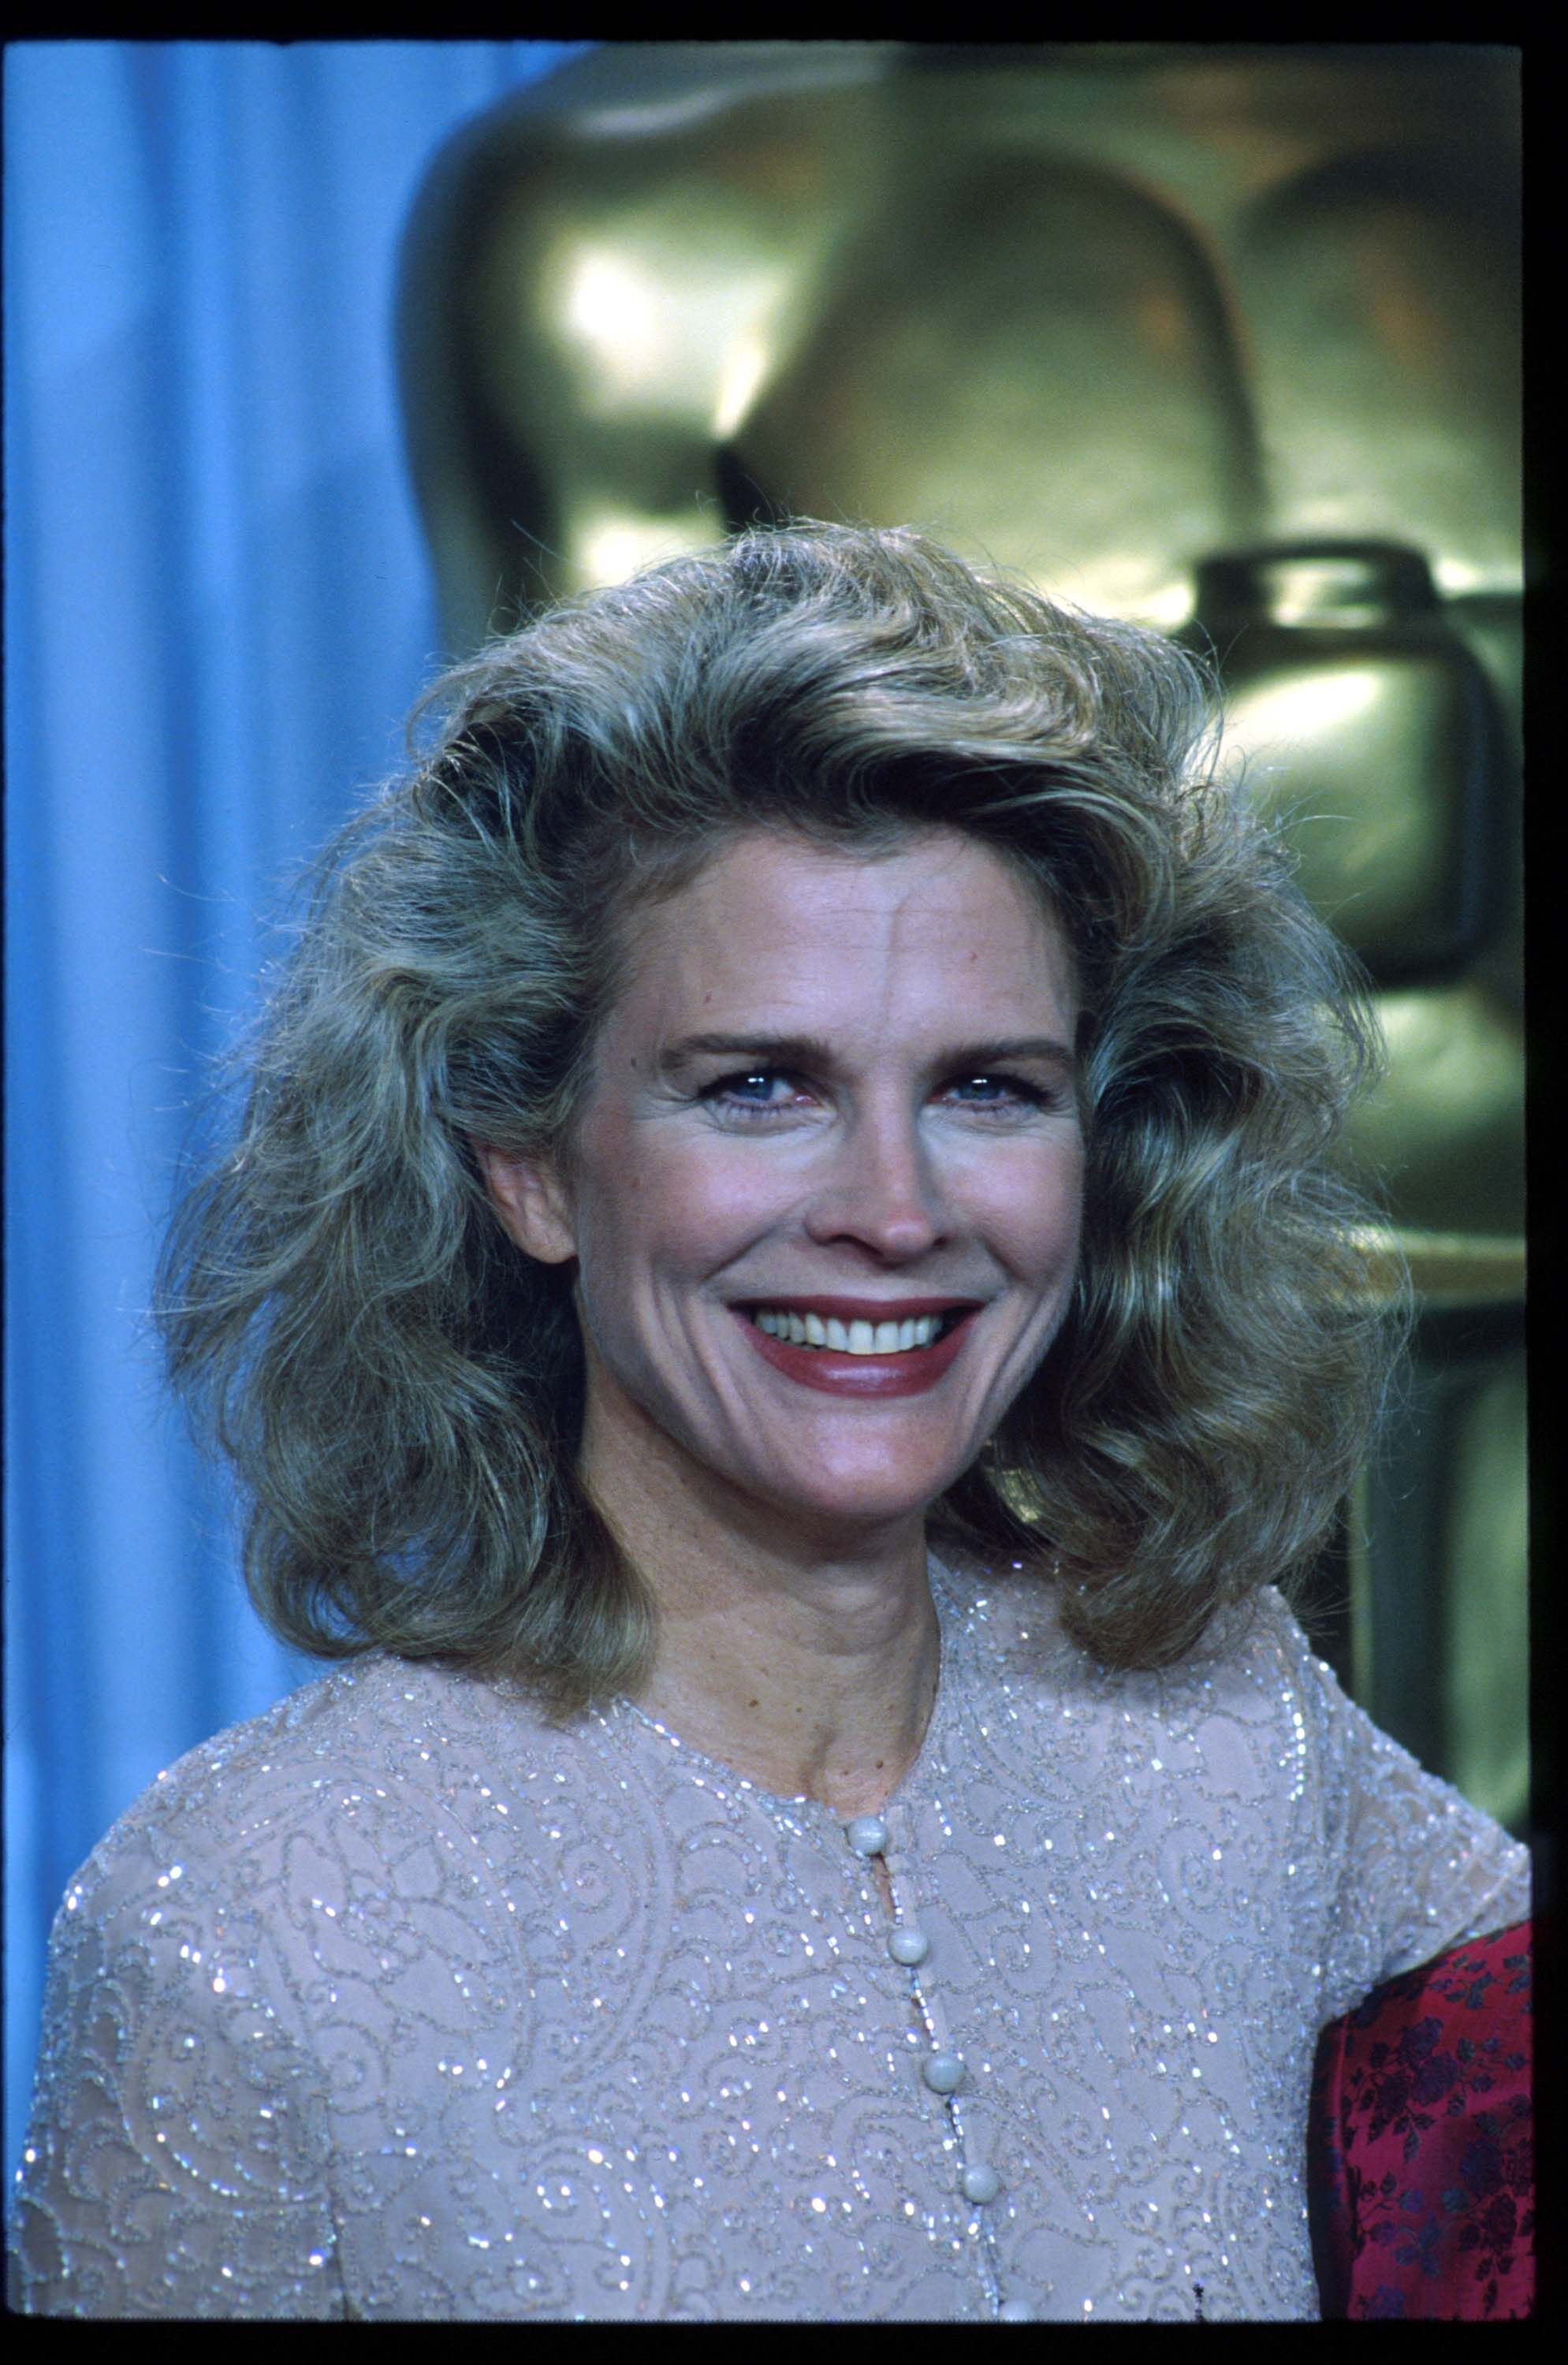 Candice Bergen stands backstage during the 62nd Academy Awards ceremony March 26, 1990 in Los Angeles, CA. | Source: Getty Images